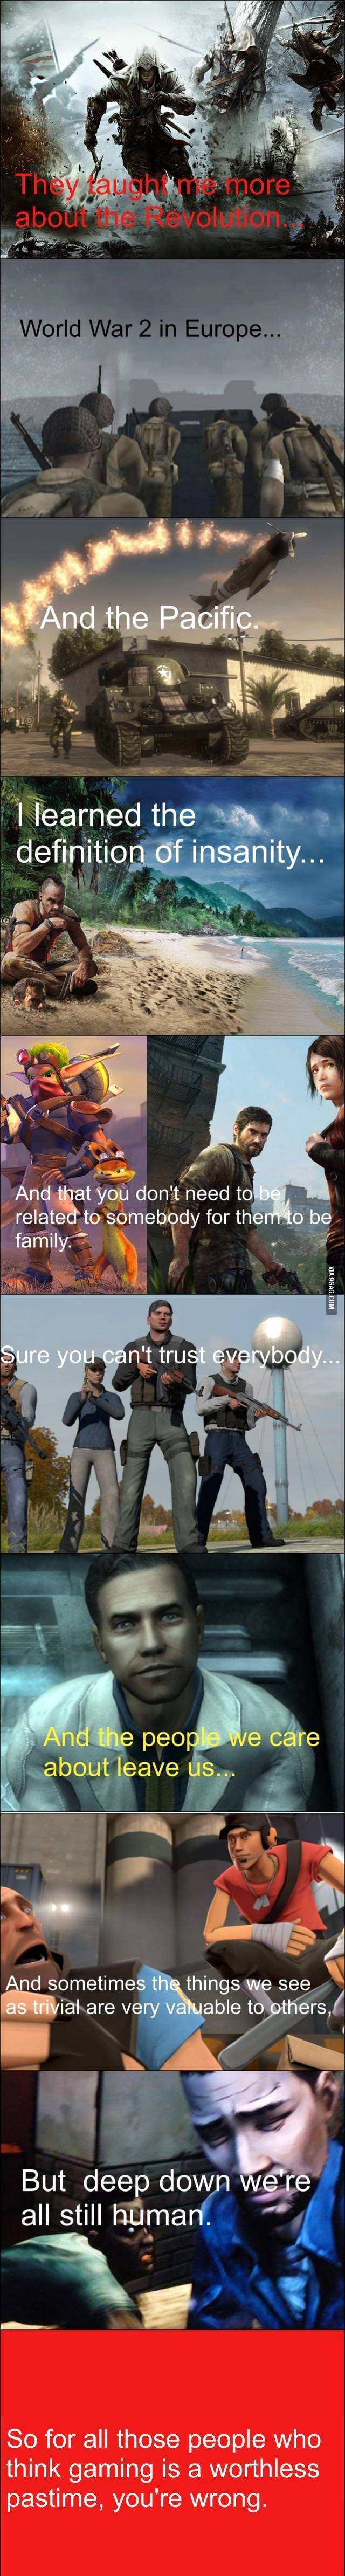 What video games have taught me...but where is uncharted that teaches you pretty much everything to do with love and family